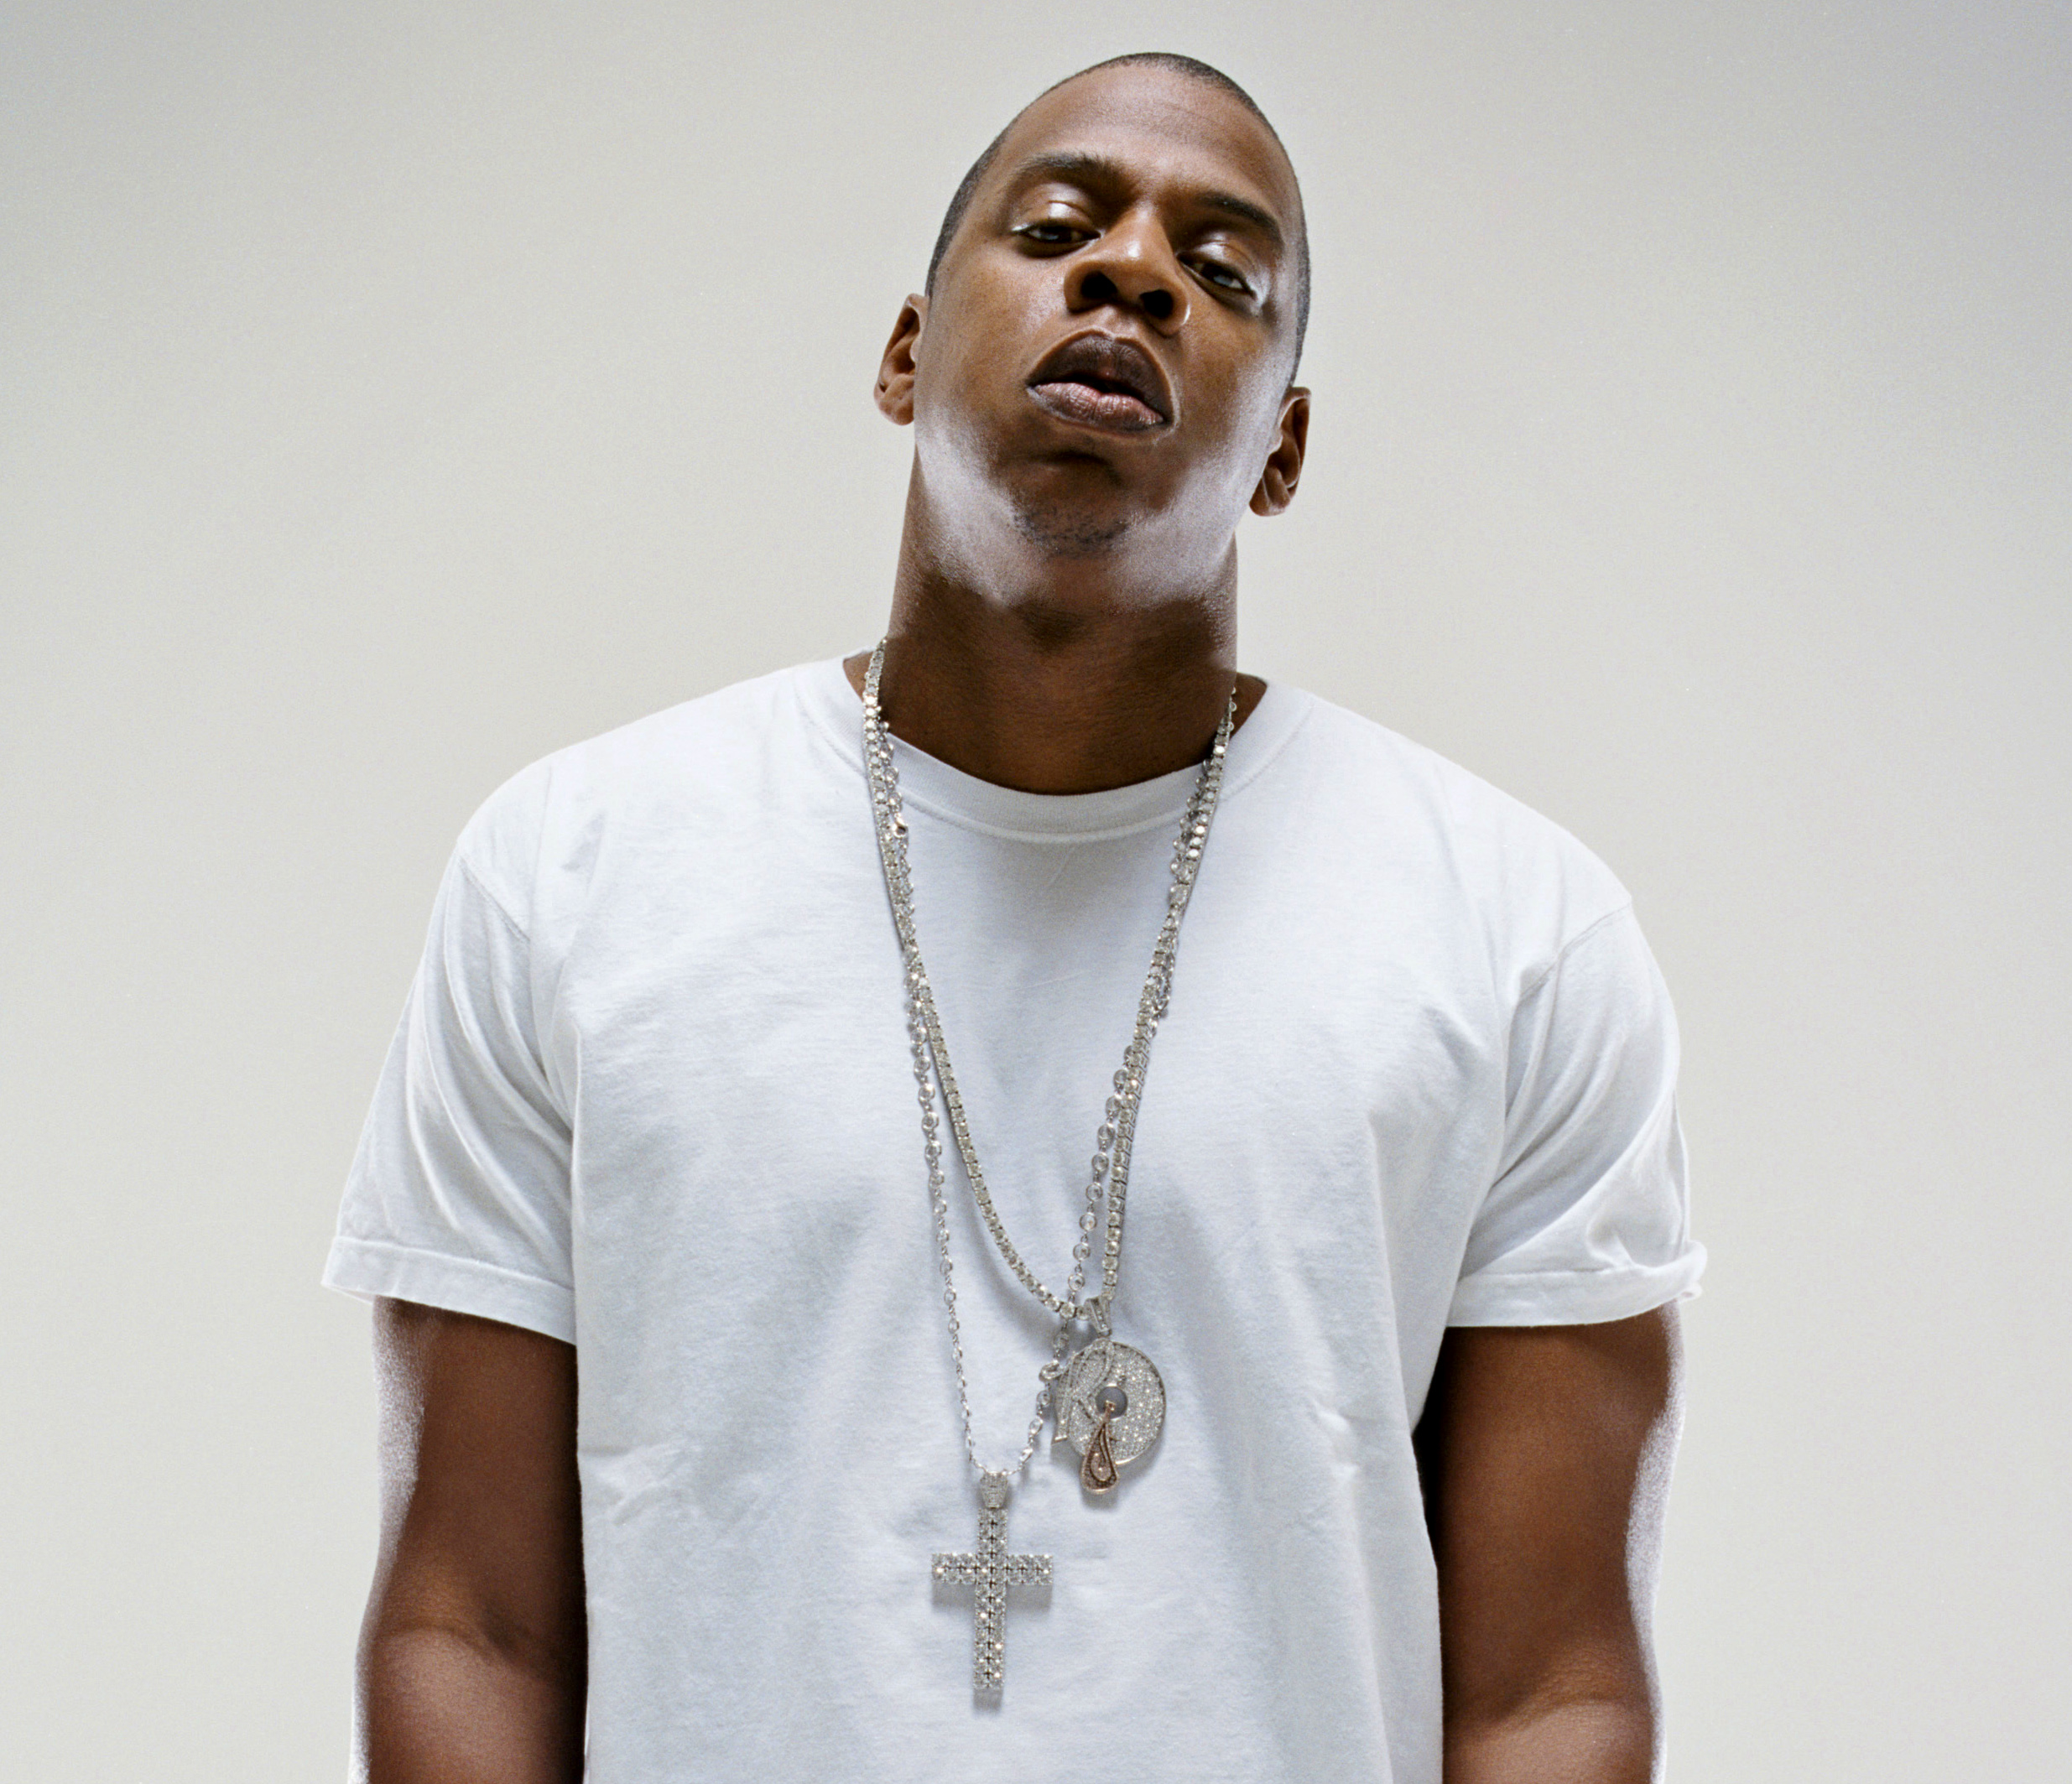 Urban Wallpaper Hd Jay Z Cool Picture Gallery